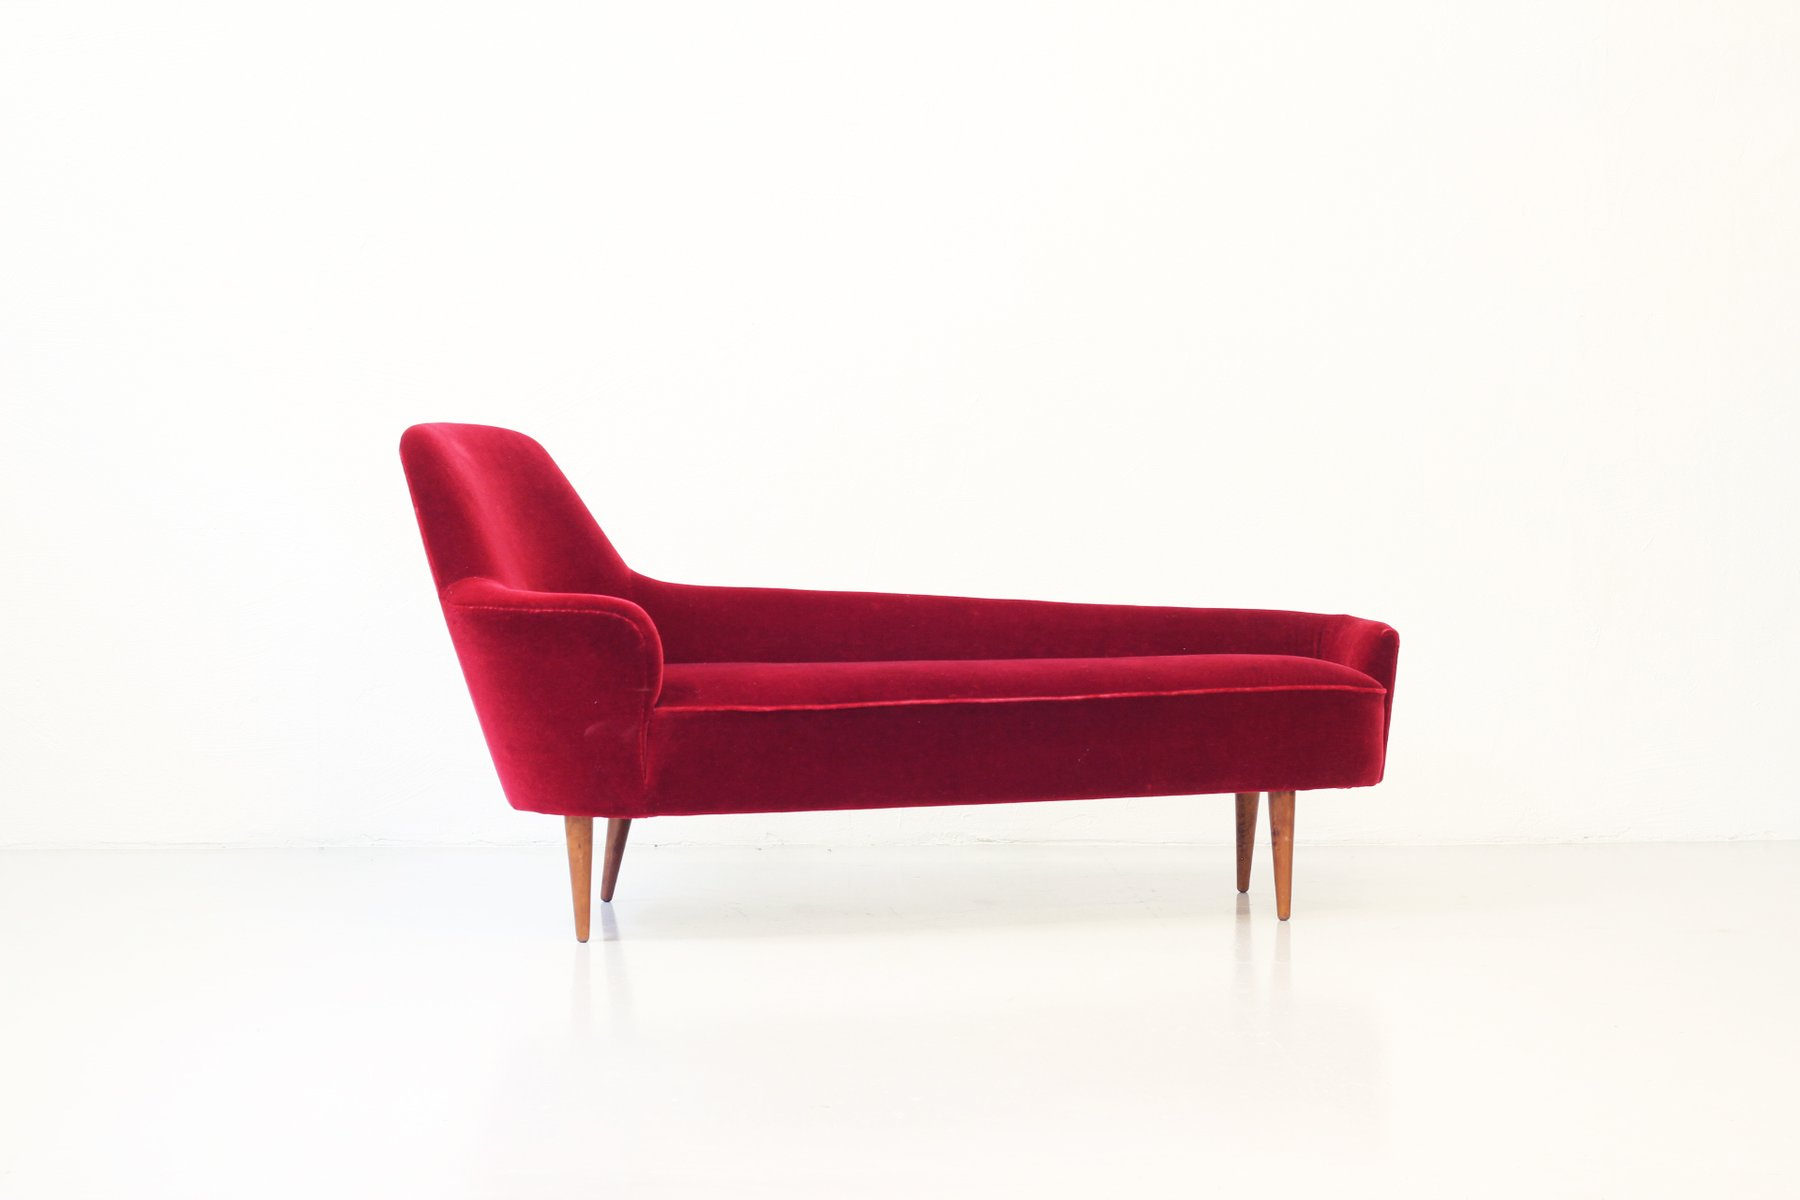 Singoalla chaise lounge by gillis lundgren for ikea 1961 for Chaise longue lockheed lounge